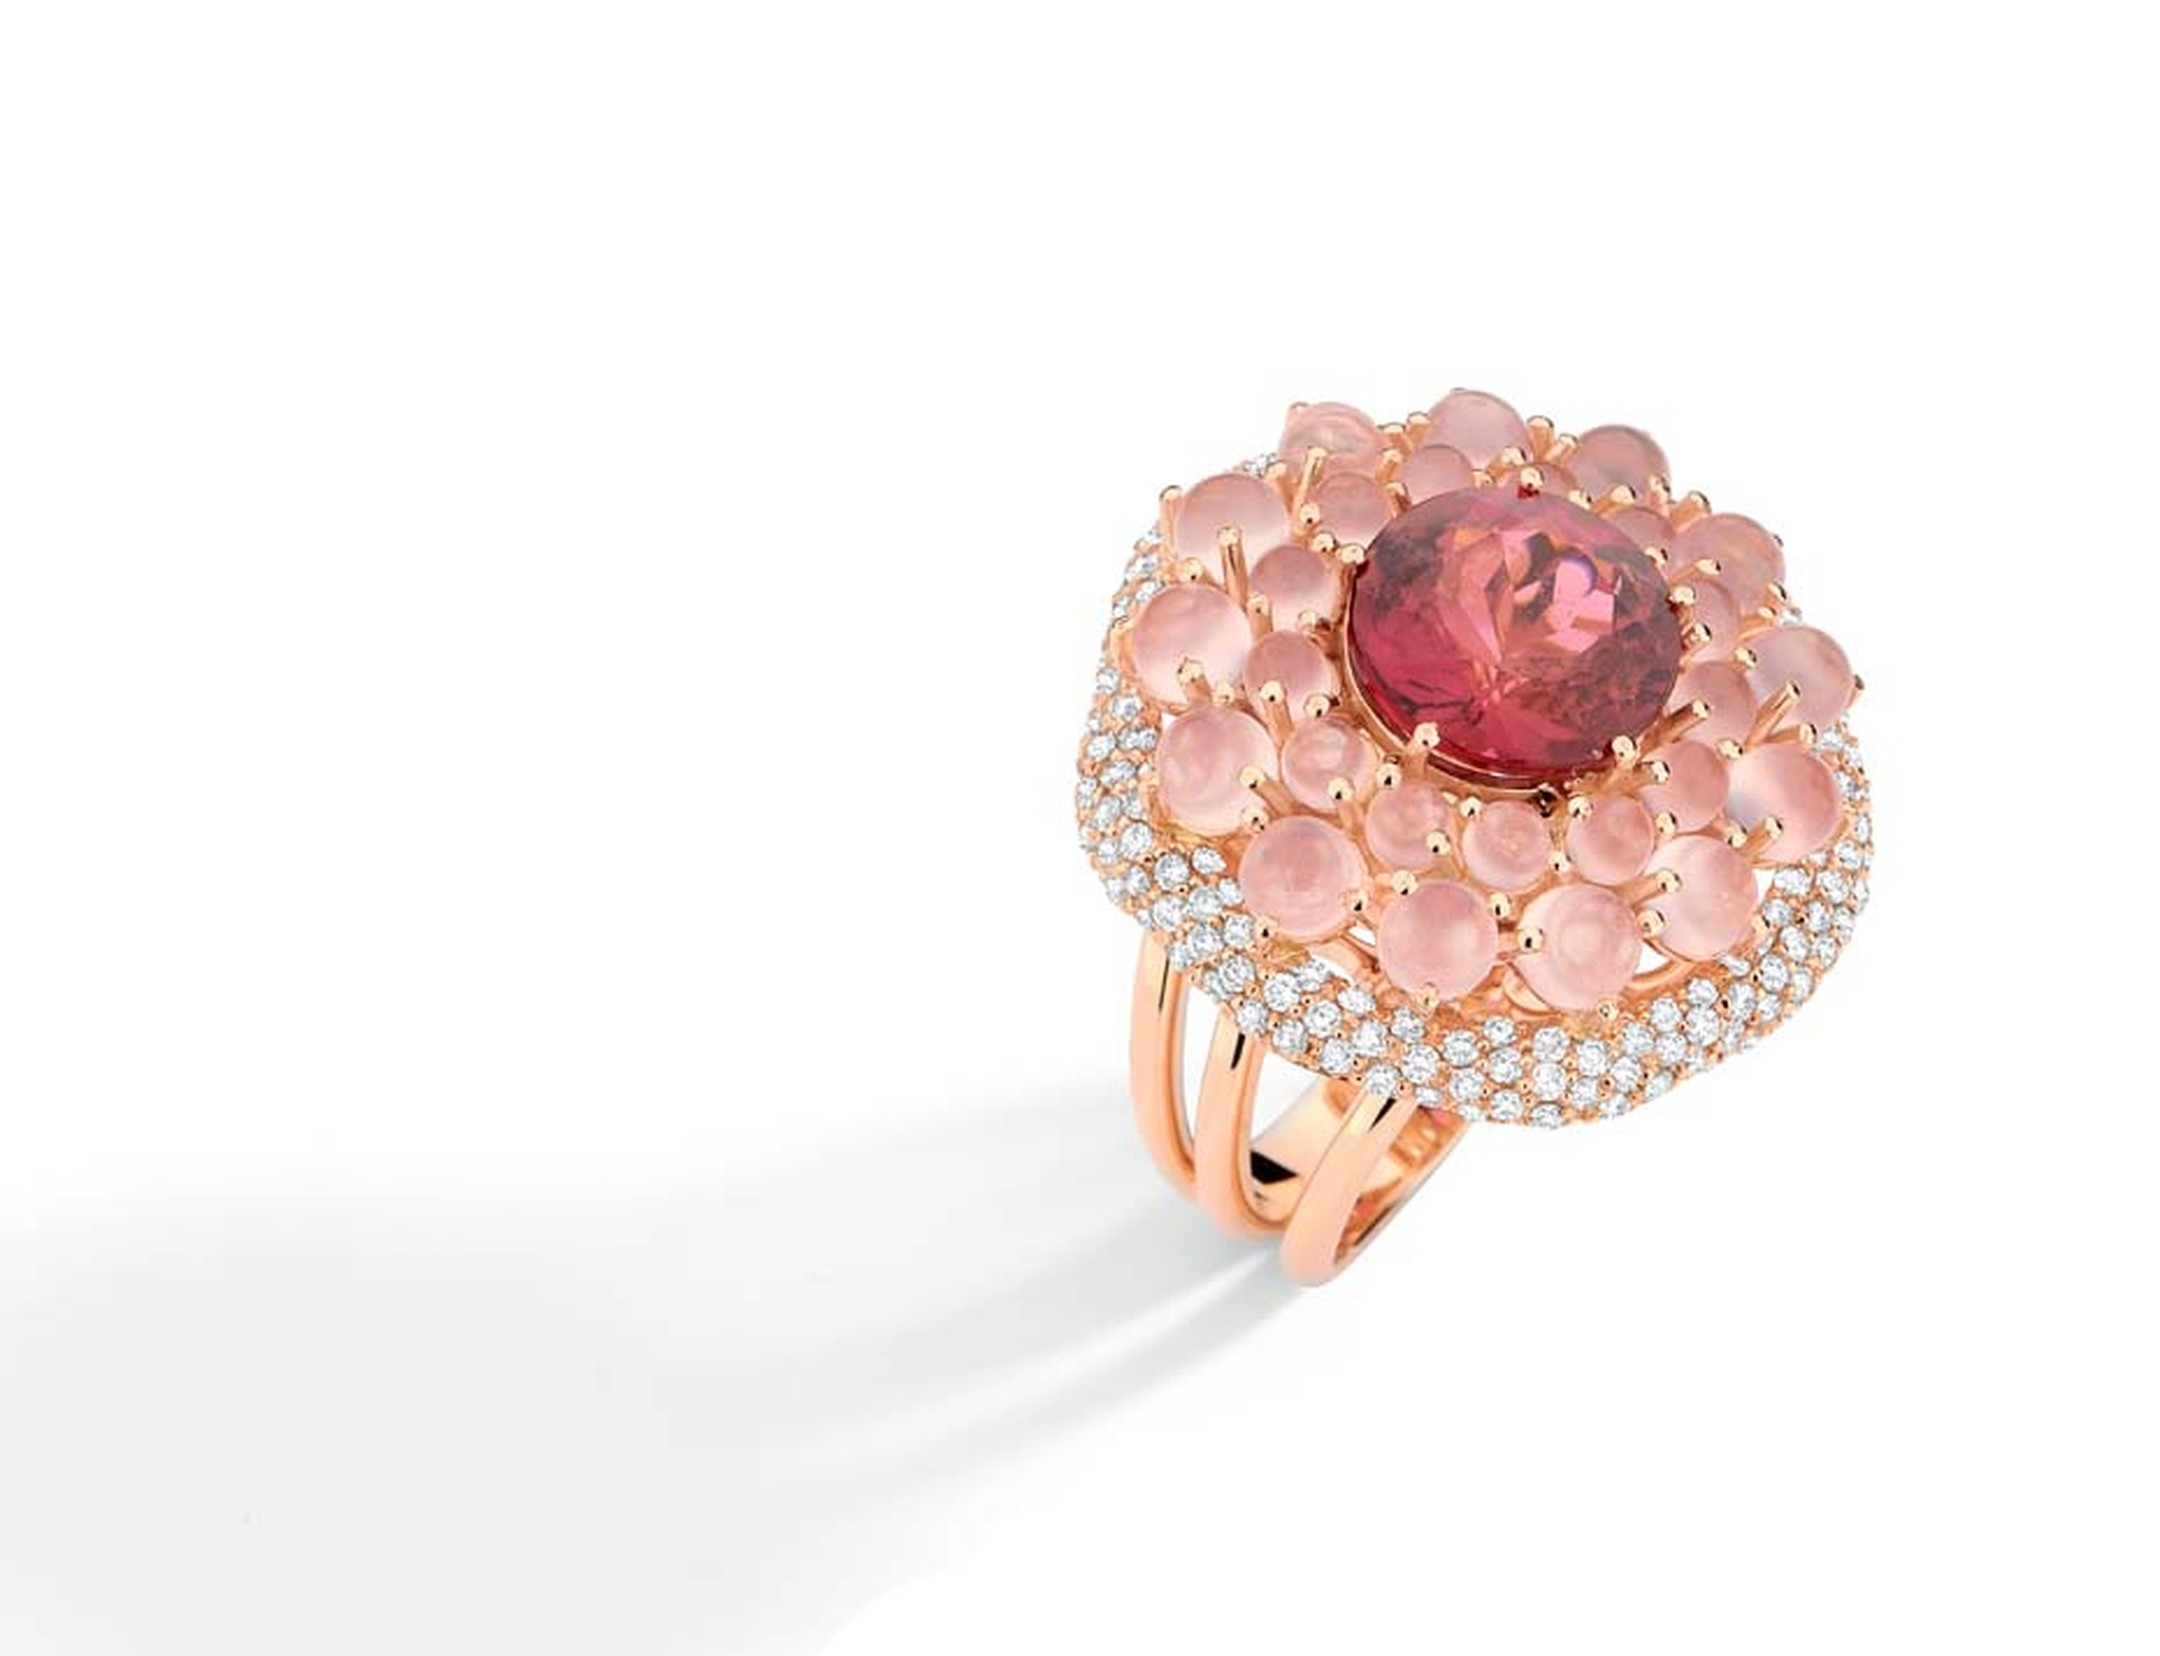 Brumani Baobab collection rose gold ring with rose quartz, a central pink tourmaline and diamonds.